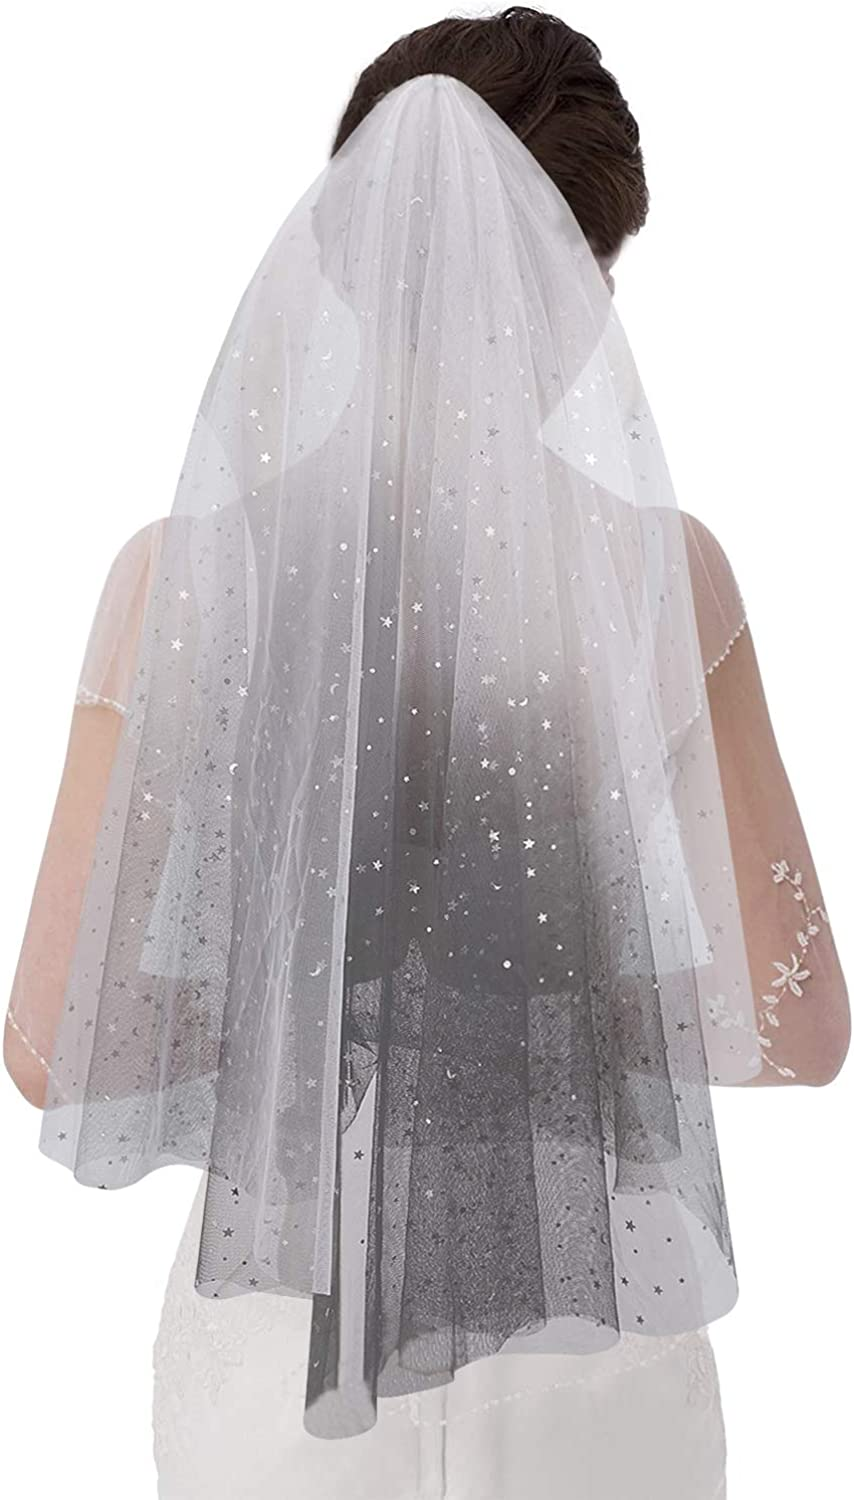 GREUS Bling Bridal Veils Halloween Costume Witch Cosplay Soft Tulle Lace Cathedral Wedding Veil